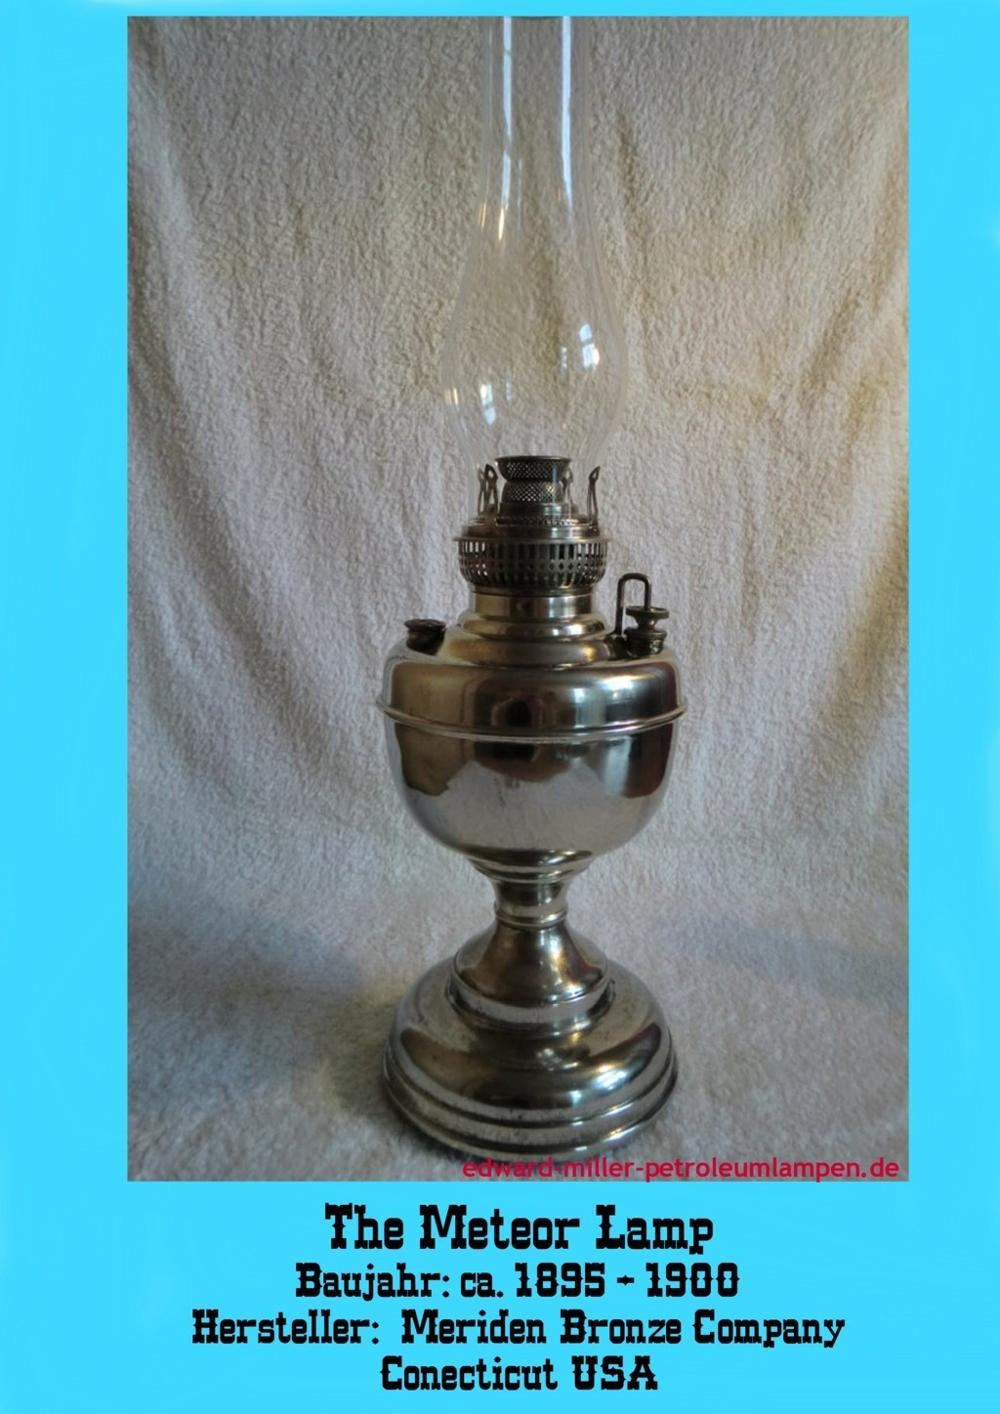 The Meteor Lamp